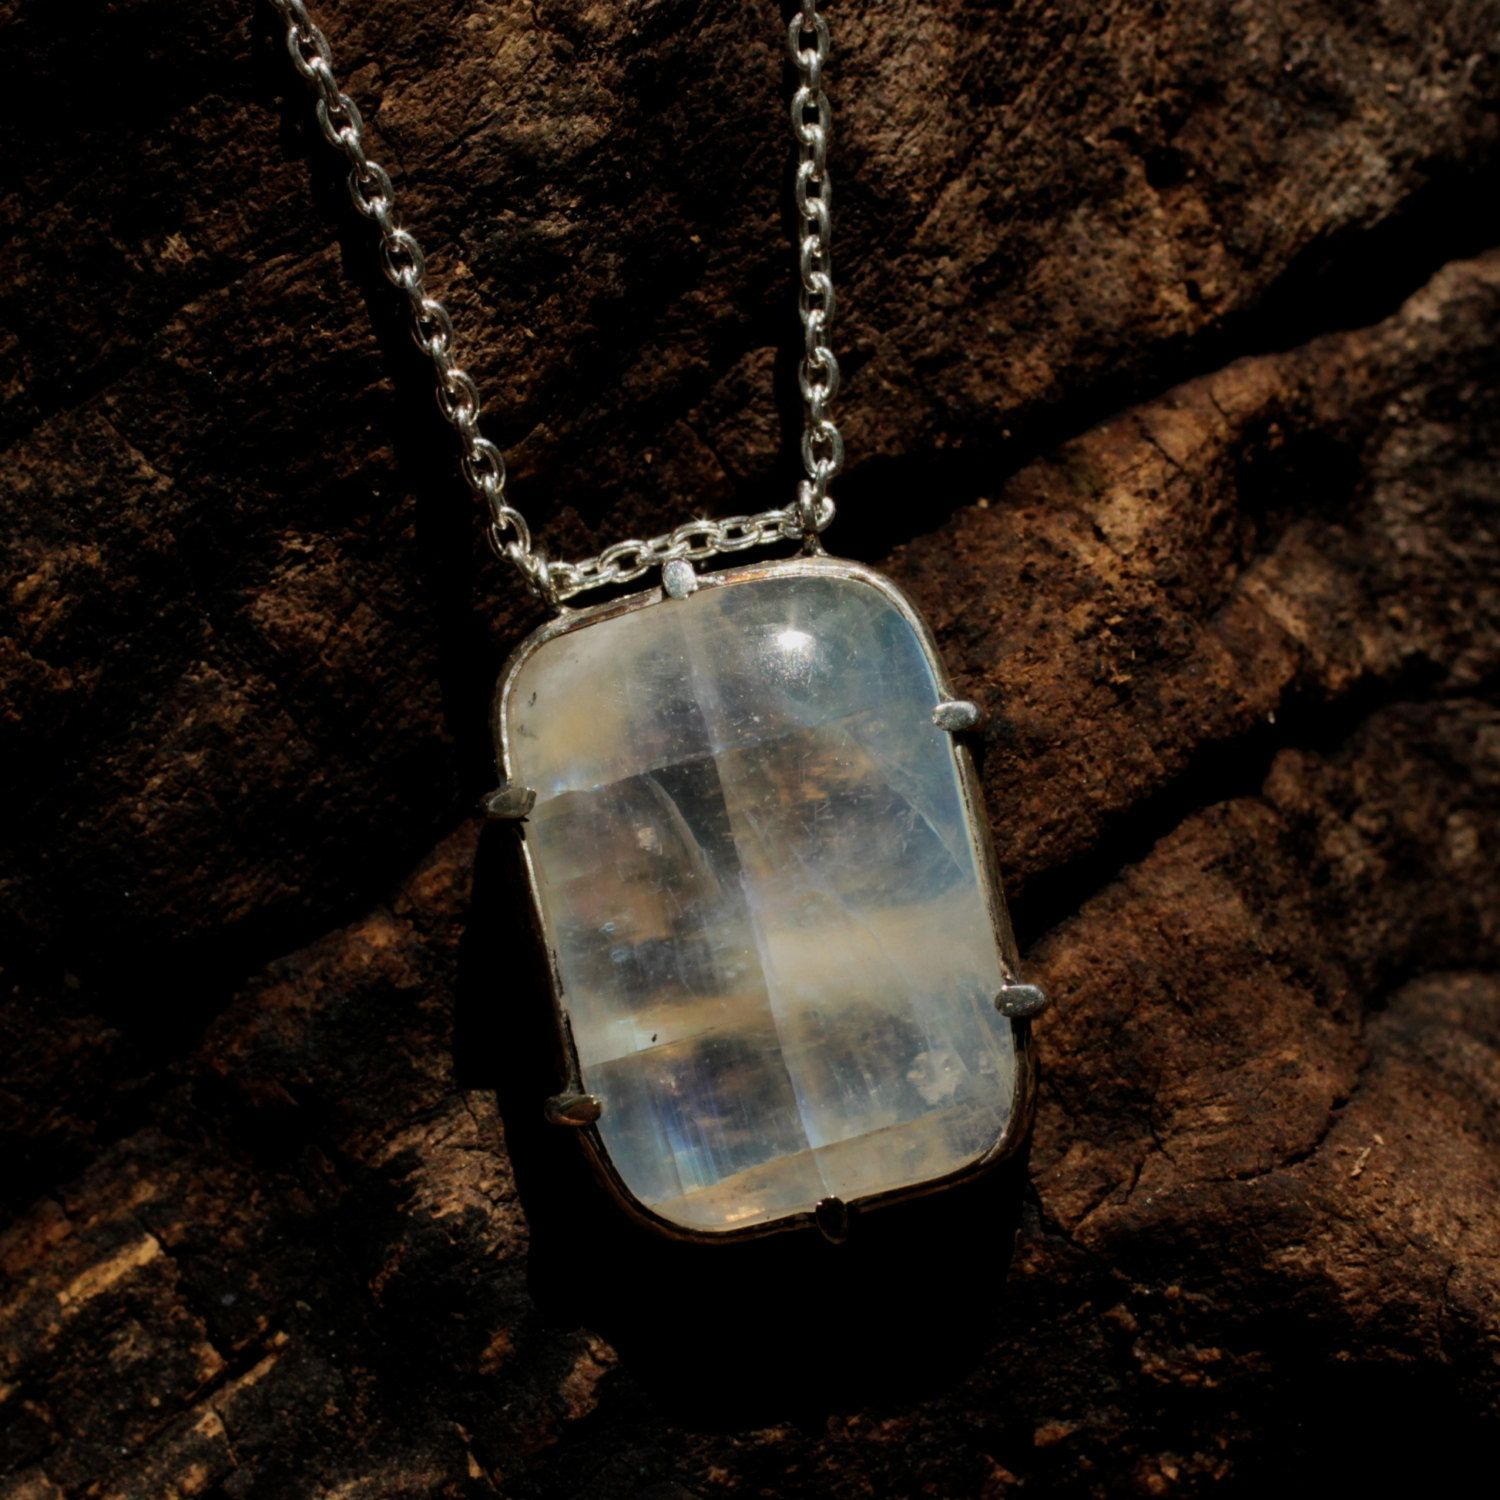 Moonstone pendant necklace in sterling silver prong and bezel setting with fine oxidized silver chain